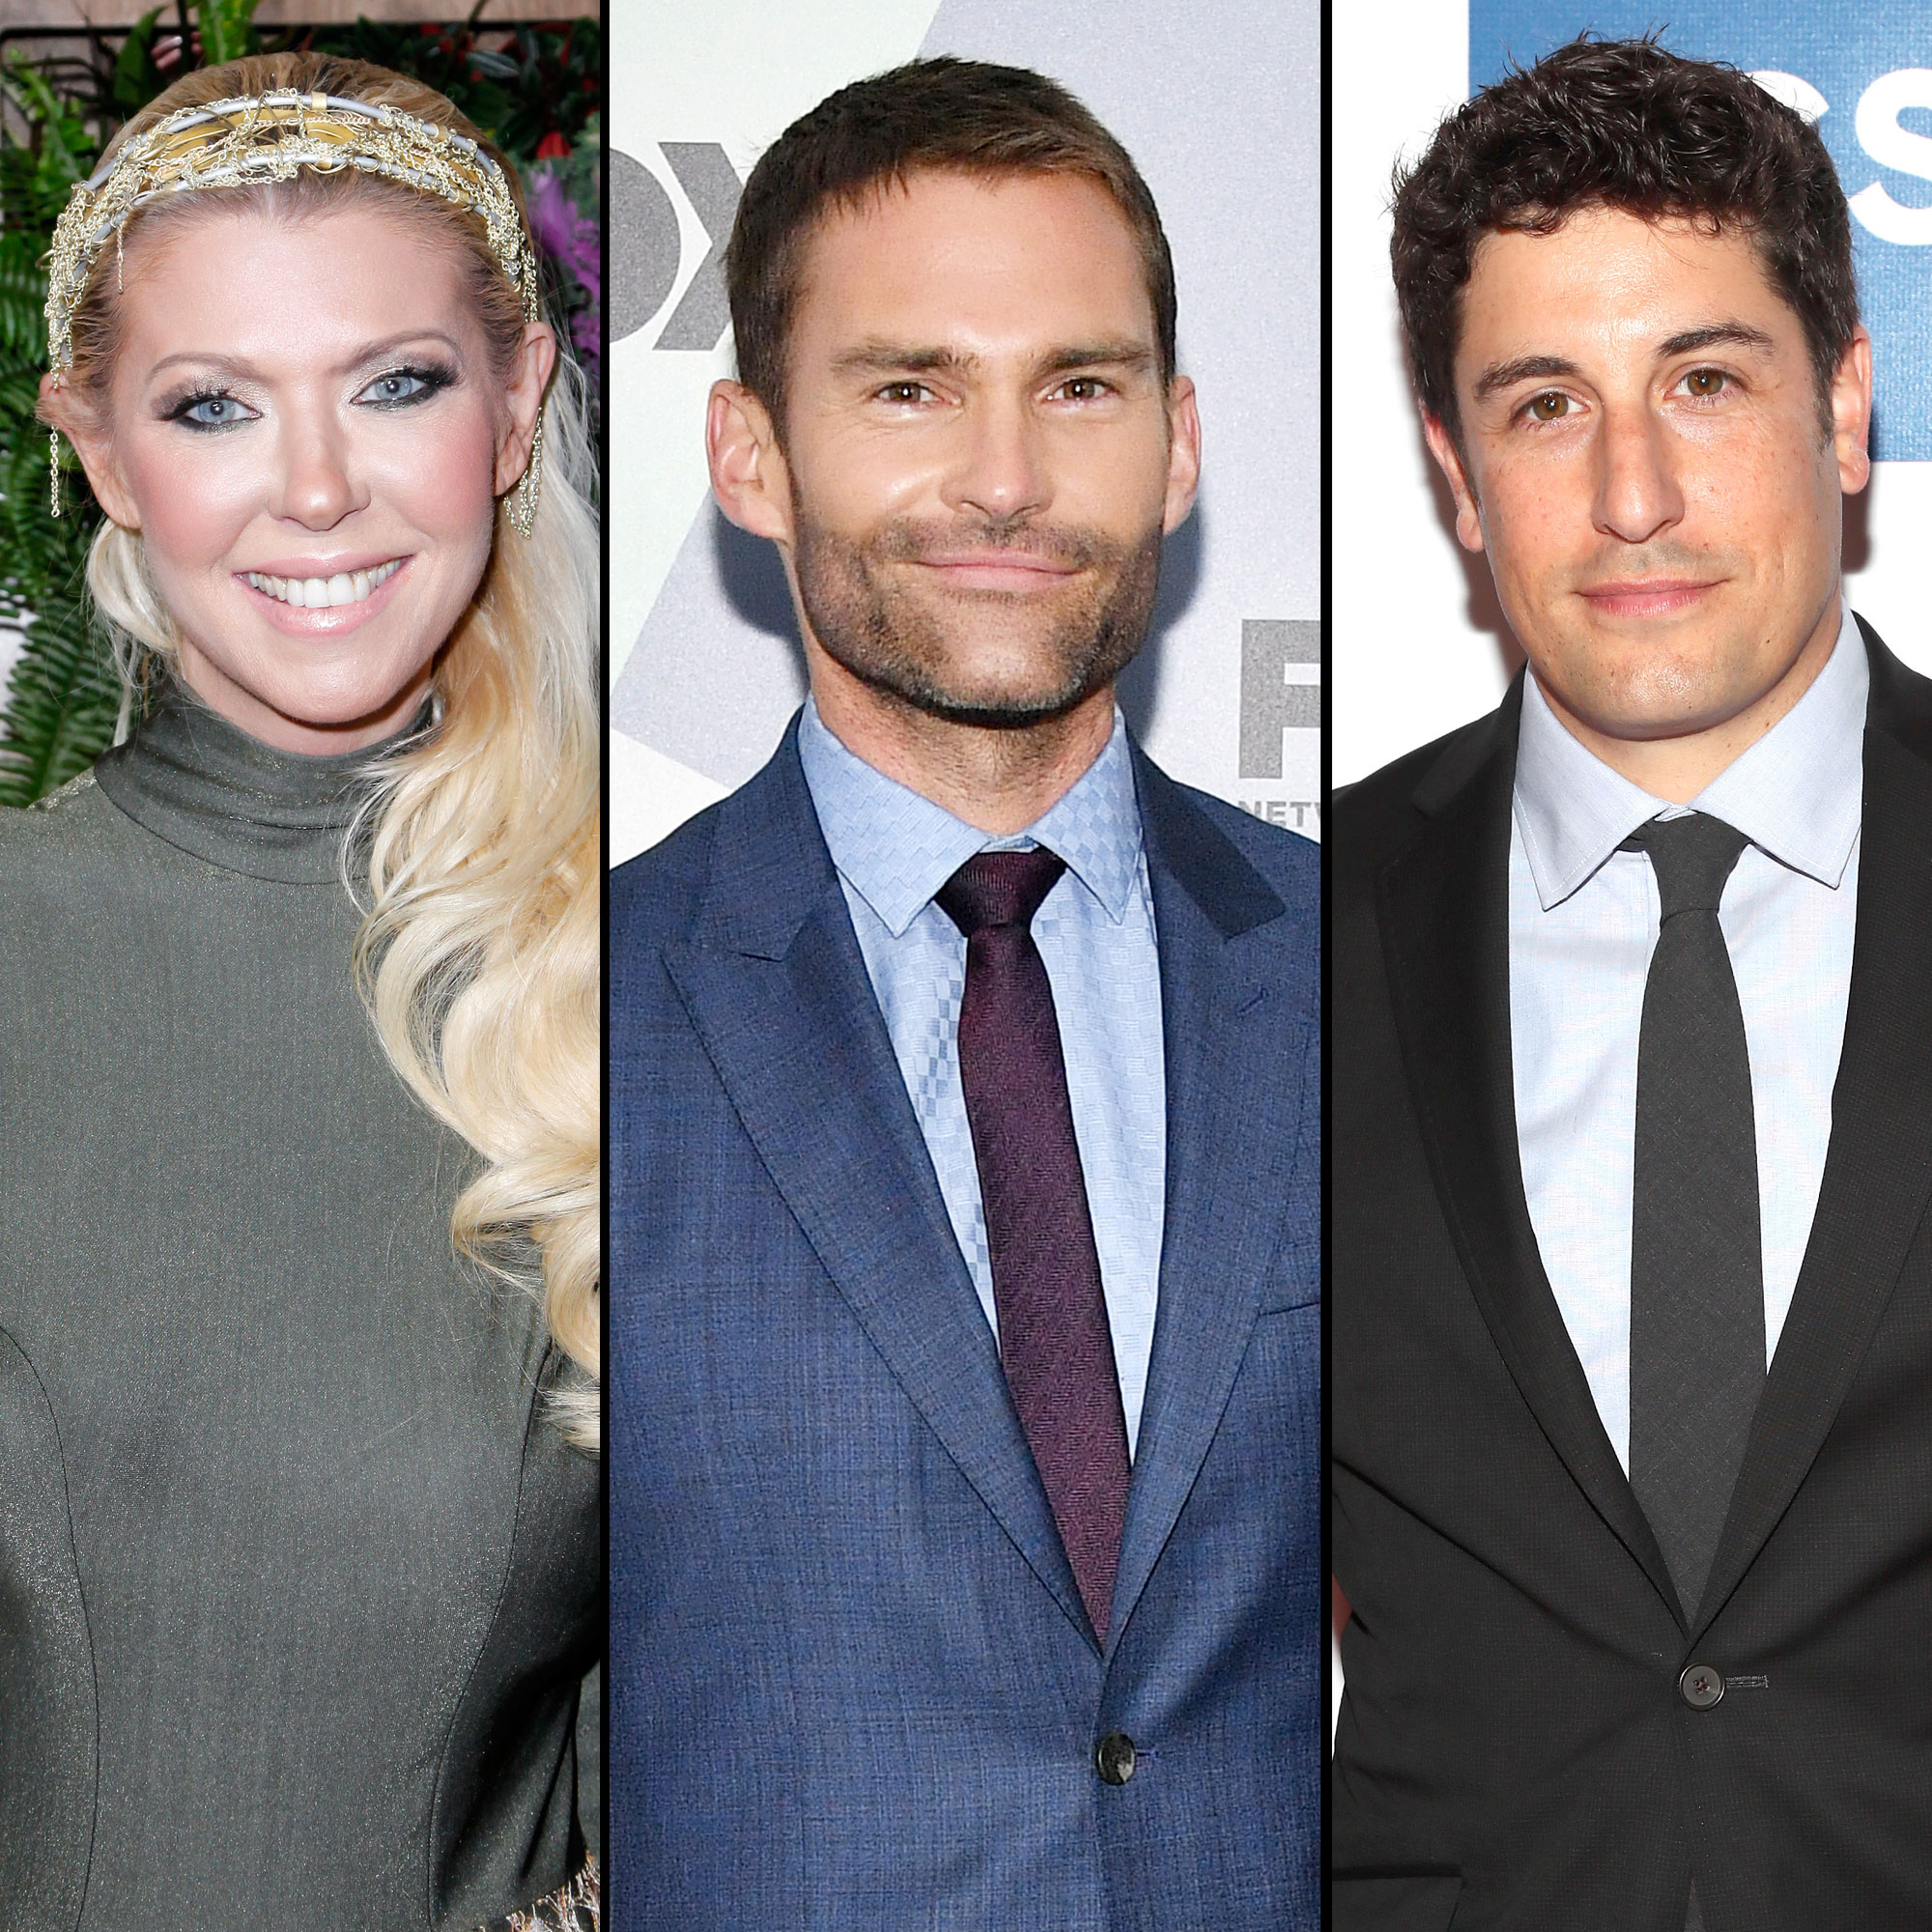 Tara Reid: Seann William Scott and Jason Biggs Would Have to 'Get Along' for 'American Pie' Sequel to Happen - Tara Reid, Seann William Scott, and Jason Biggs